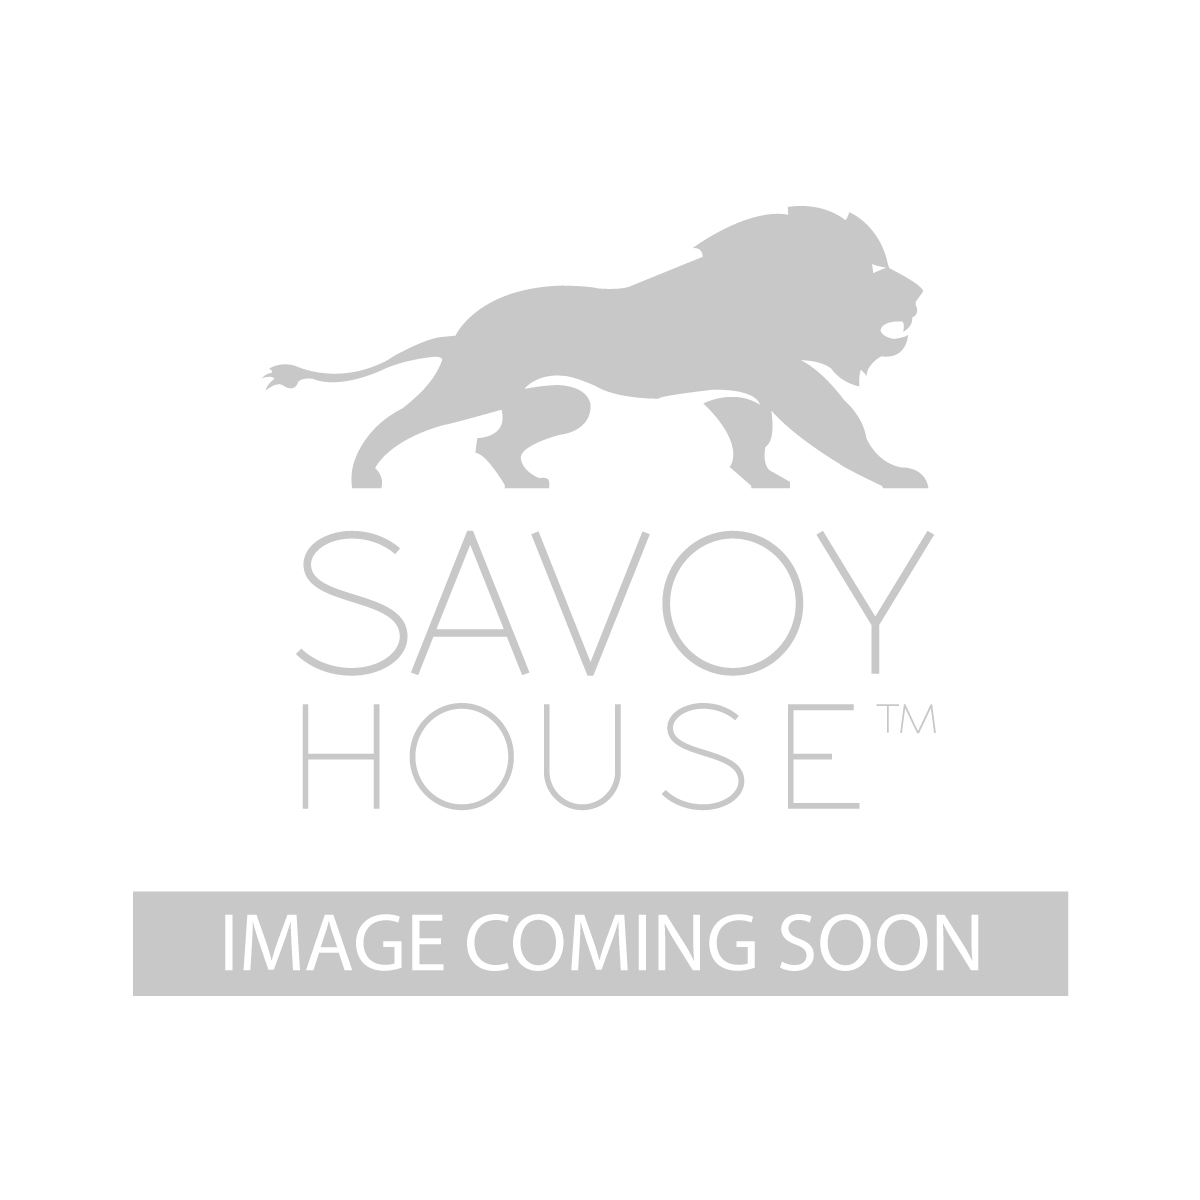 Outdoor Lighting by Savoy House